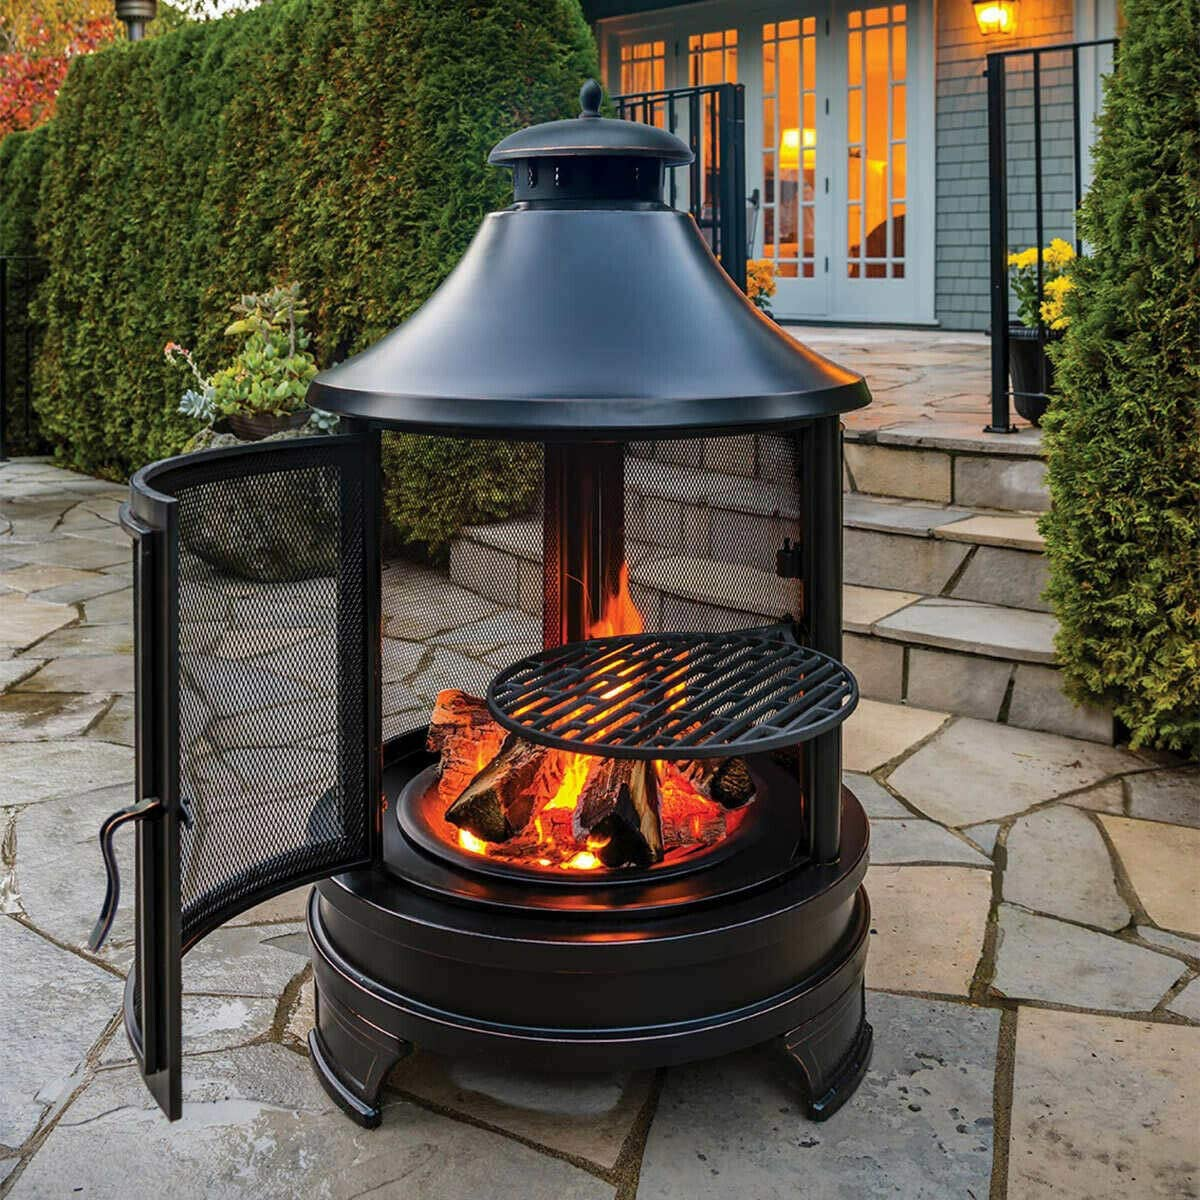 Fireplace Chimnea With Cooking Grill Fire Pit Firepit Barbecue Buy Smokeless Indoor Fire Pit Ceramic Fire Pit Terracotta Fire Pits Product On Alibaba Com